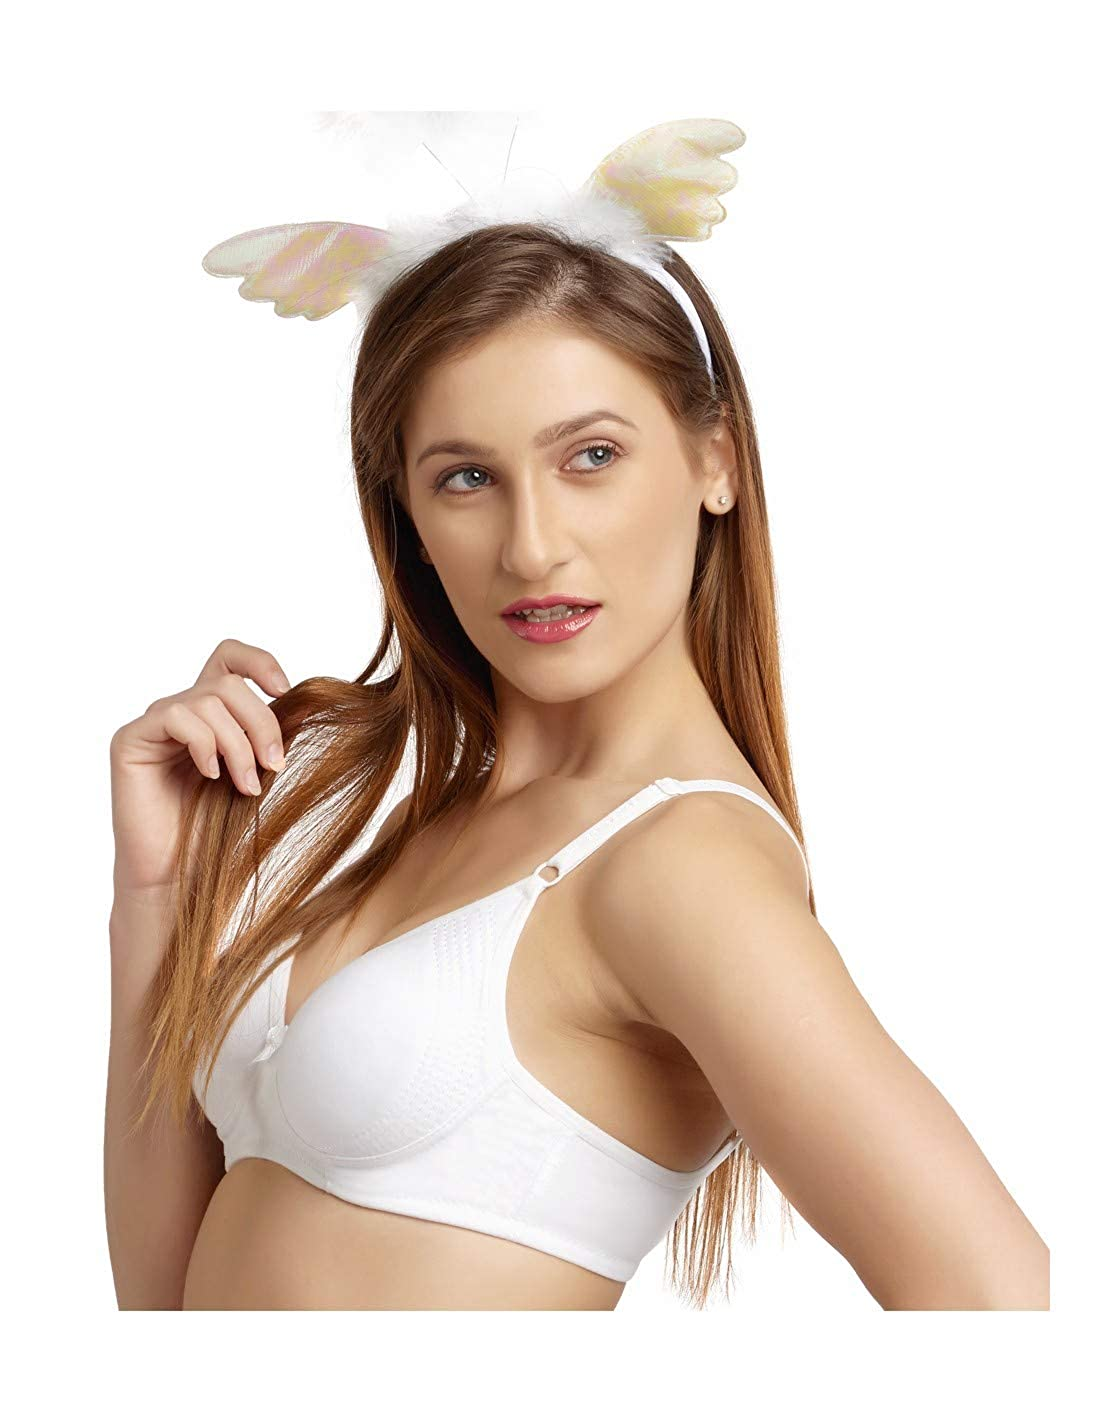 e8a89b56a1a68 DAISY DEE White Color Cotton Regular Straps Seamless Full Coverage Non  Padded T-Shirt Bra for Women - SUPERSHAPER Simply Smooth  Amazon.in   Clothing   ...